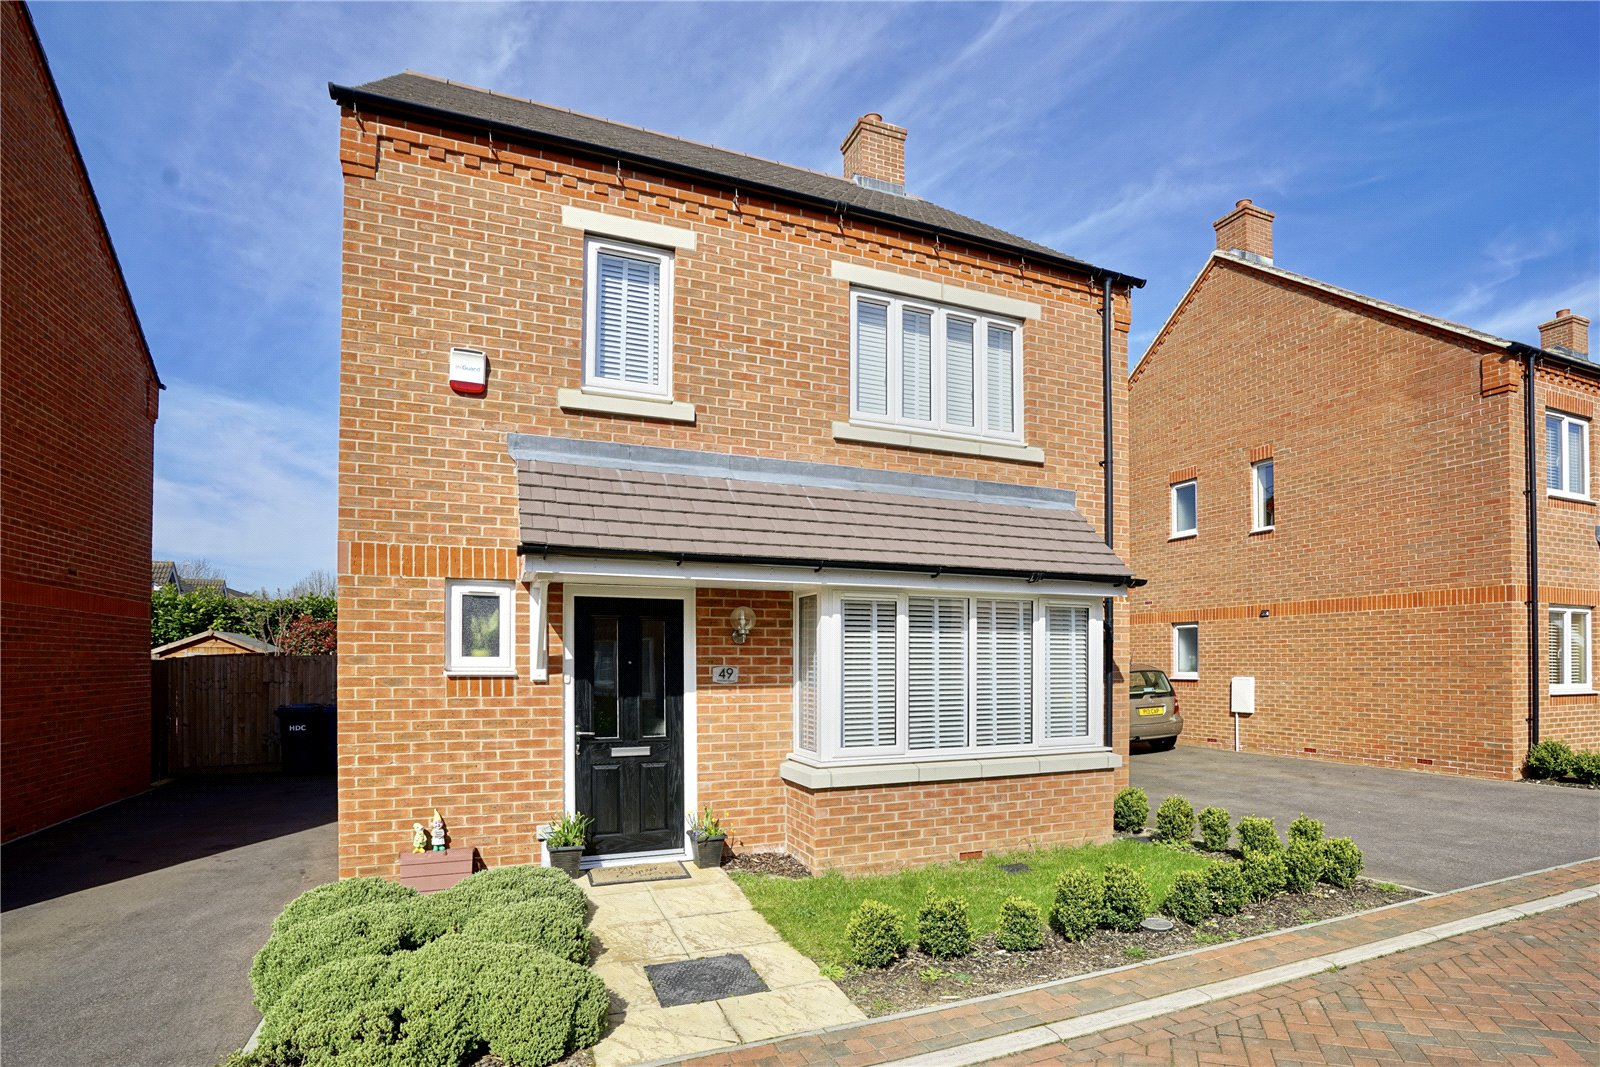 4 bed house for sale in Whinfell Close, Eaton Socon 1